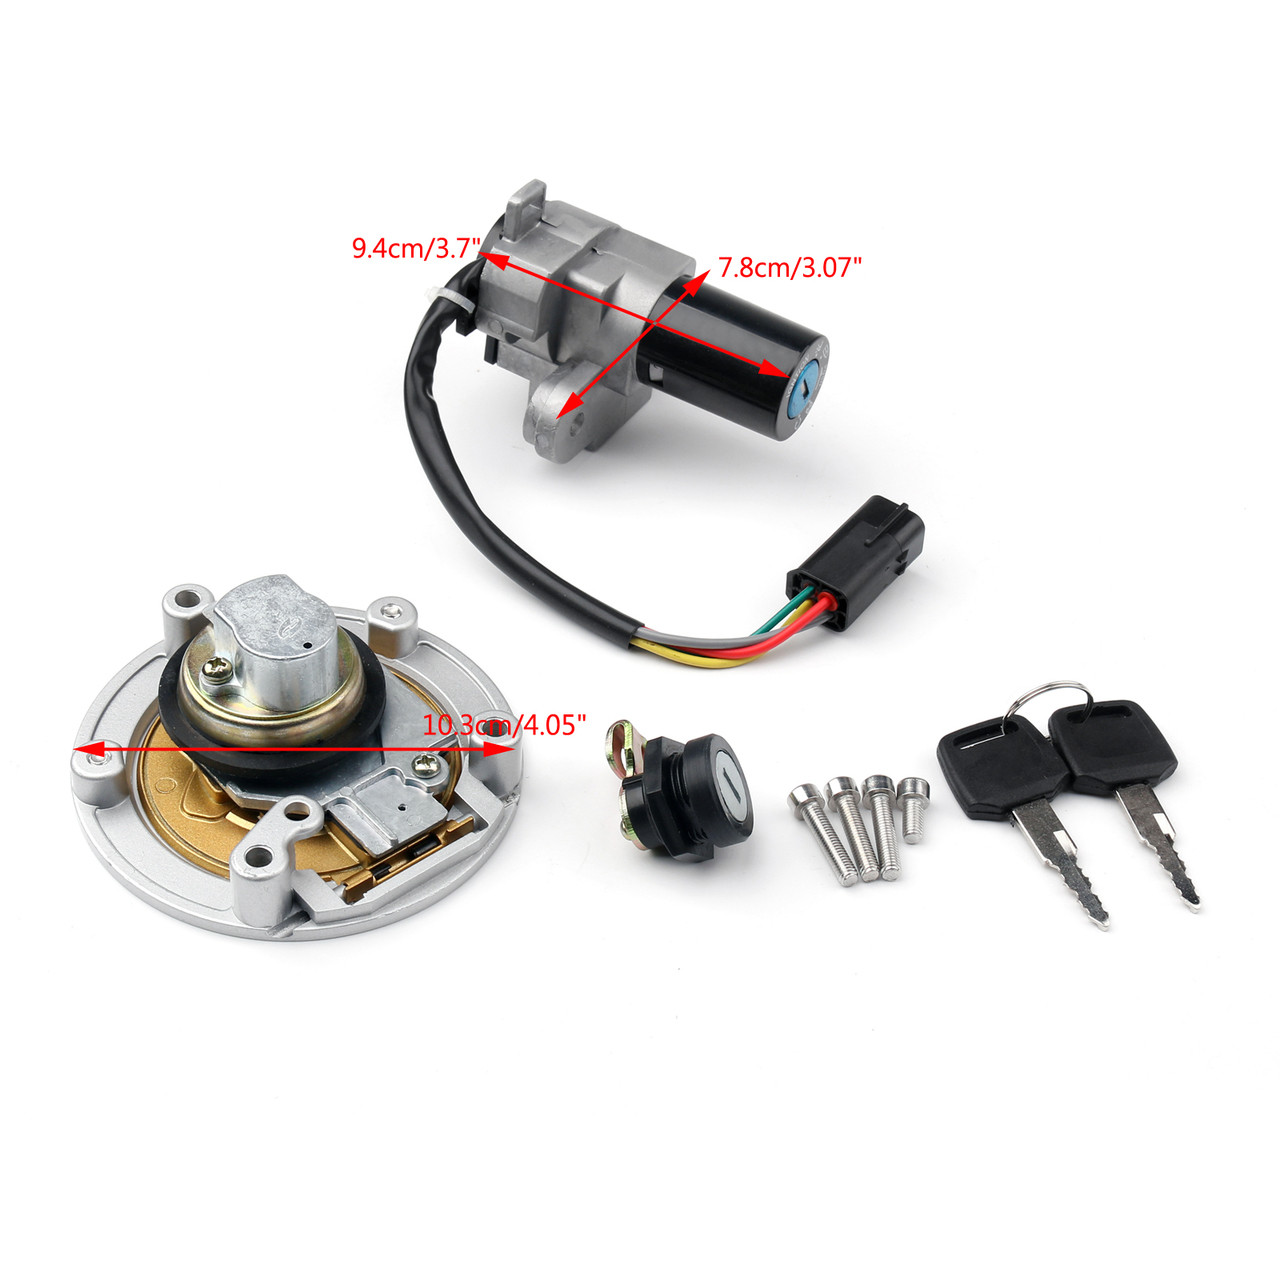 Ignition Switch Lock Fuel Gas Cap Key Set For Ducati 848 1098 1198 748 Pump Wiring Monster1200